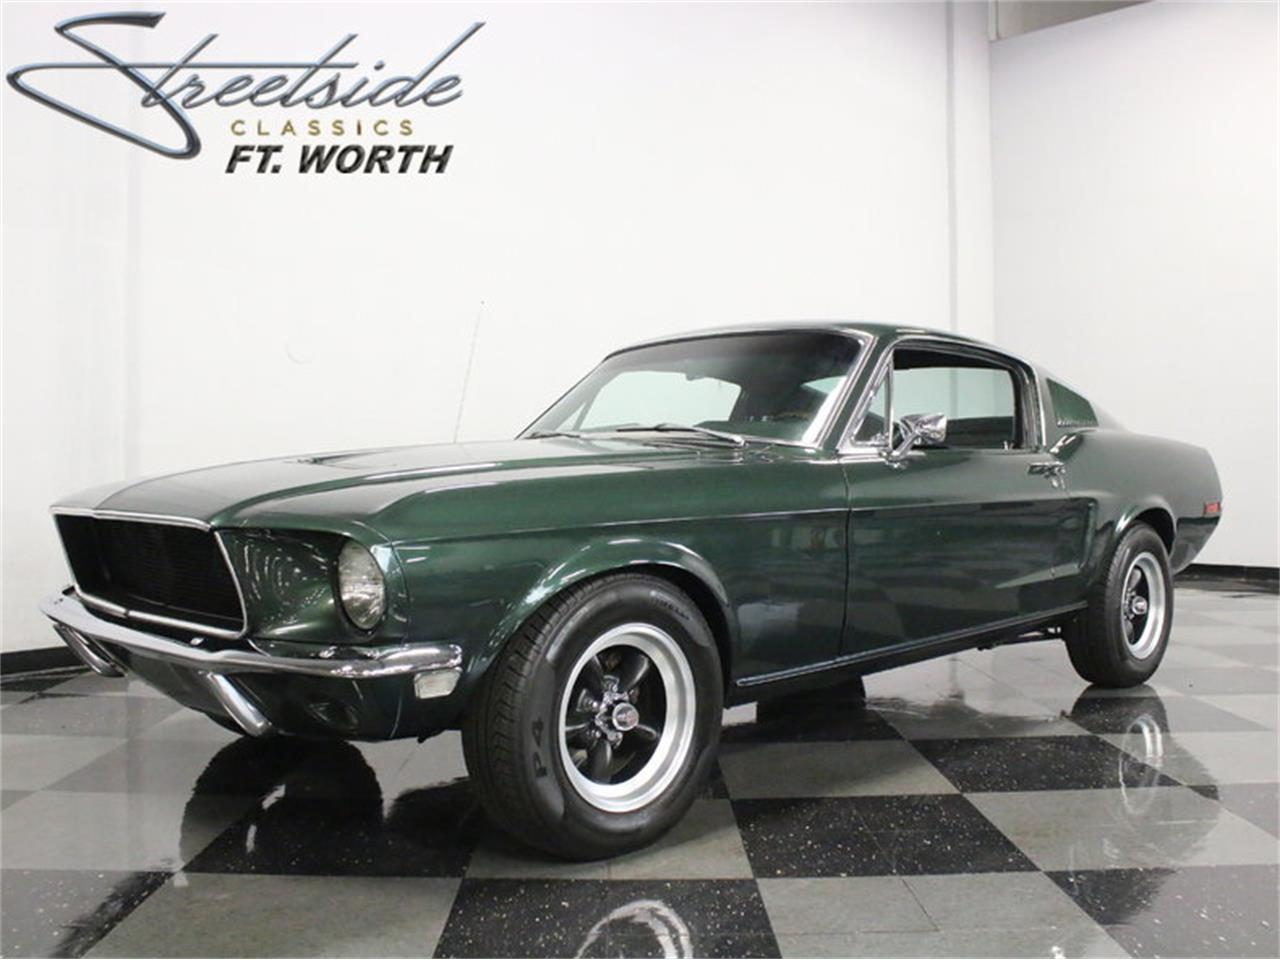 Large picture of 68 mustang bullitt tribute l3zk